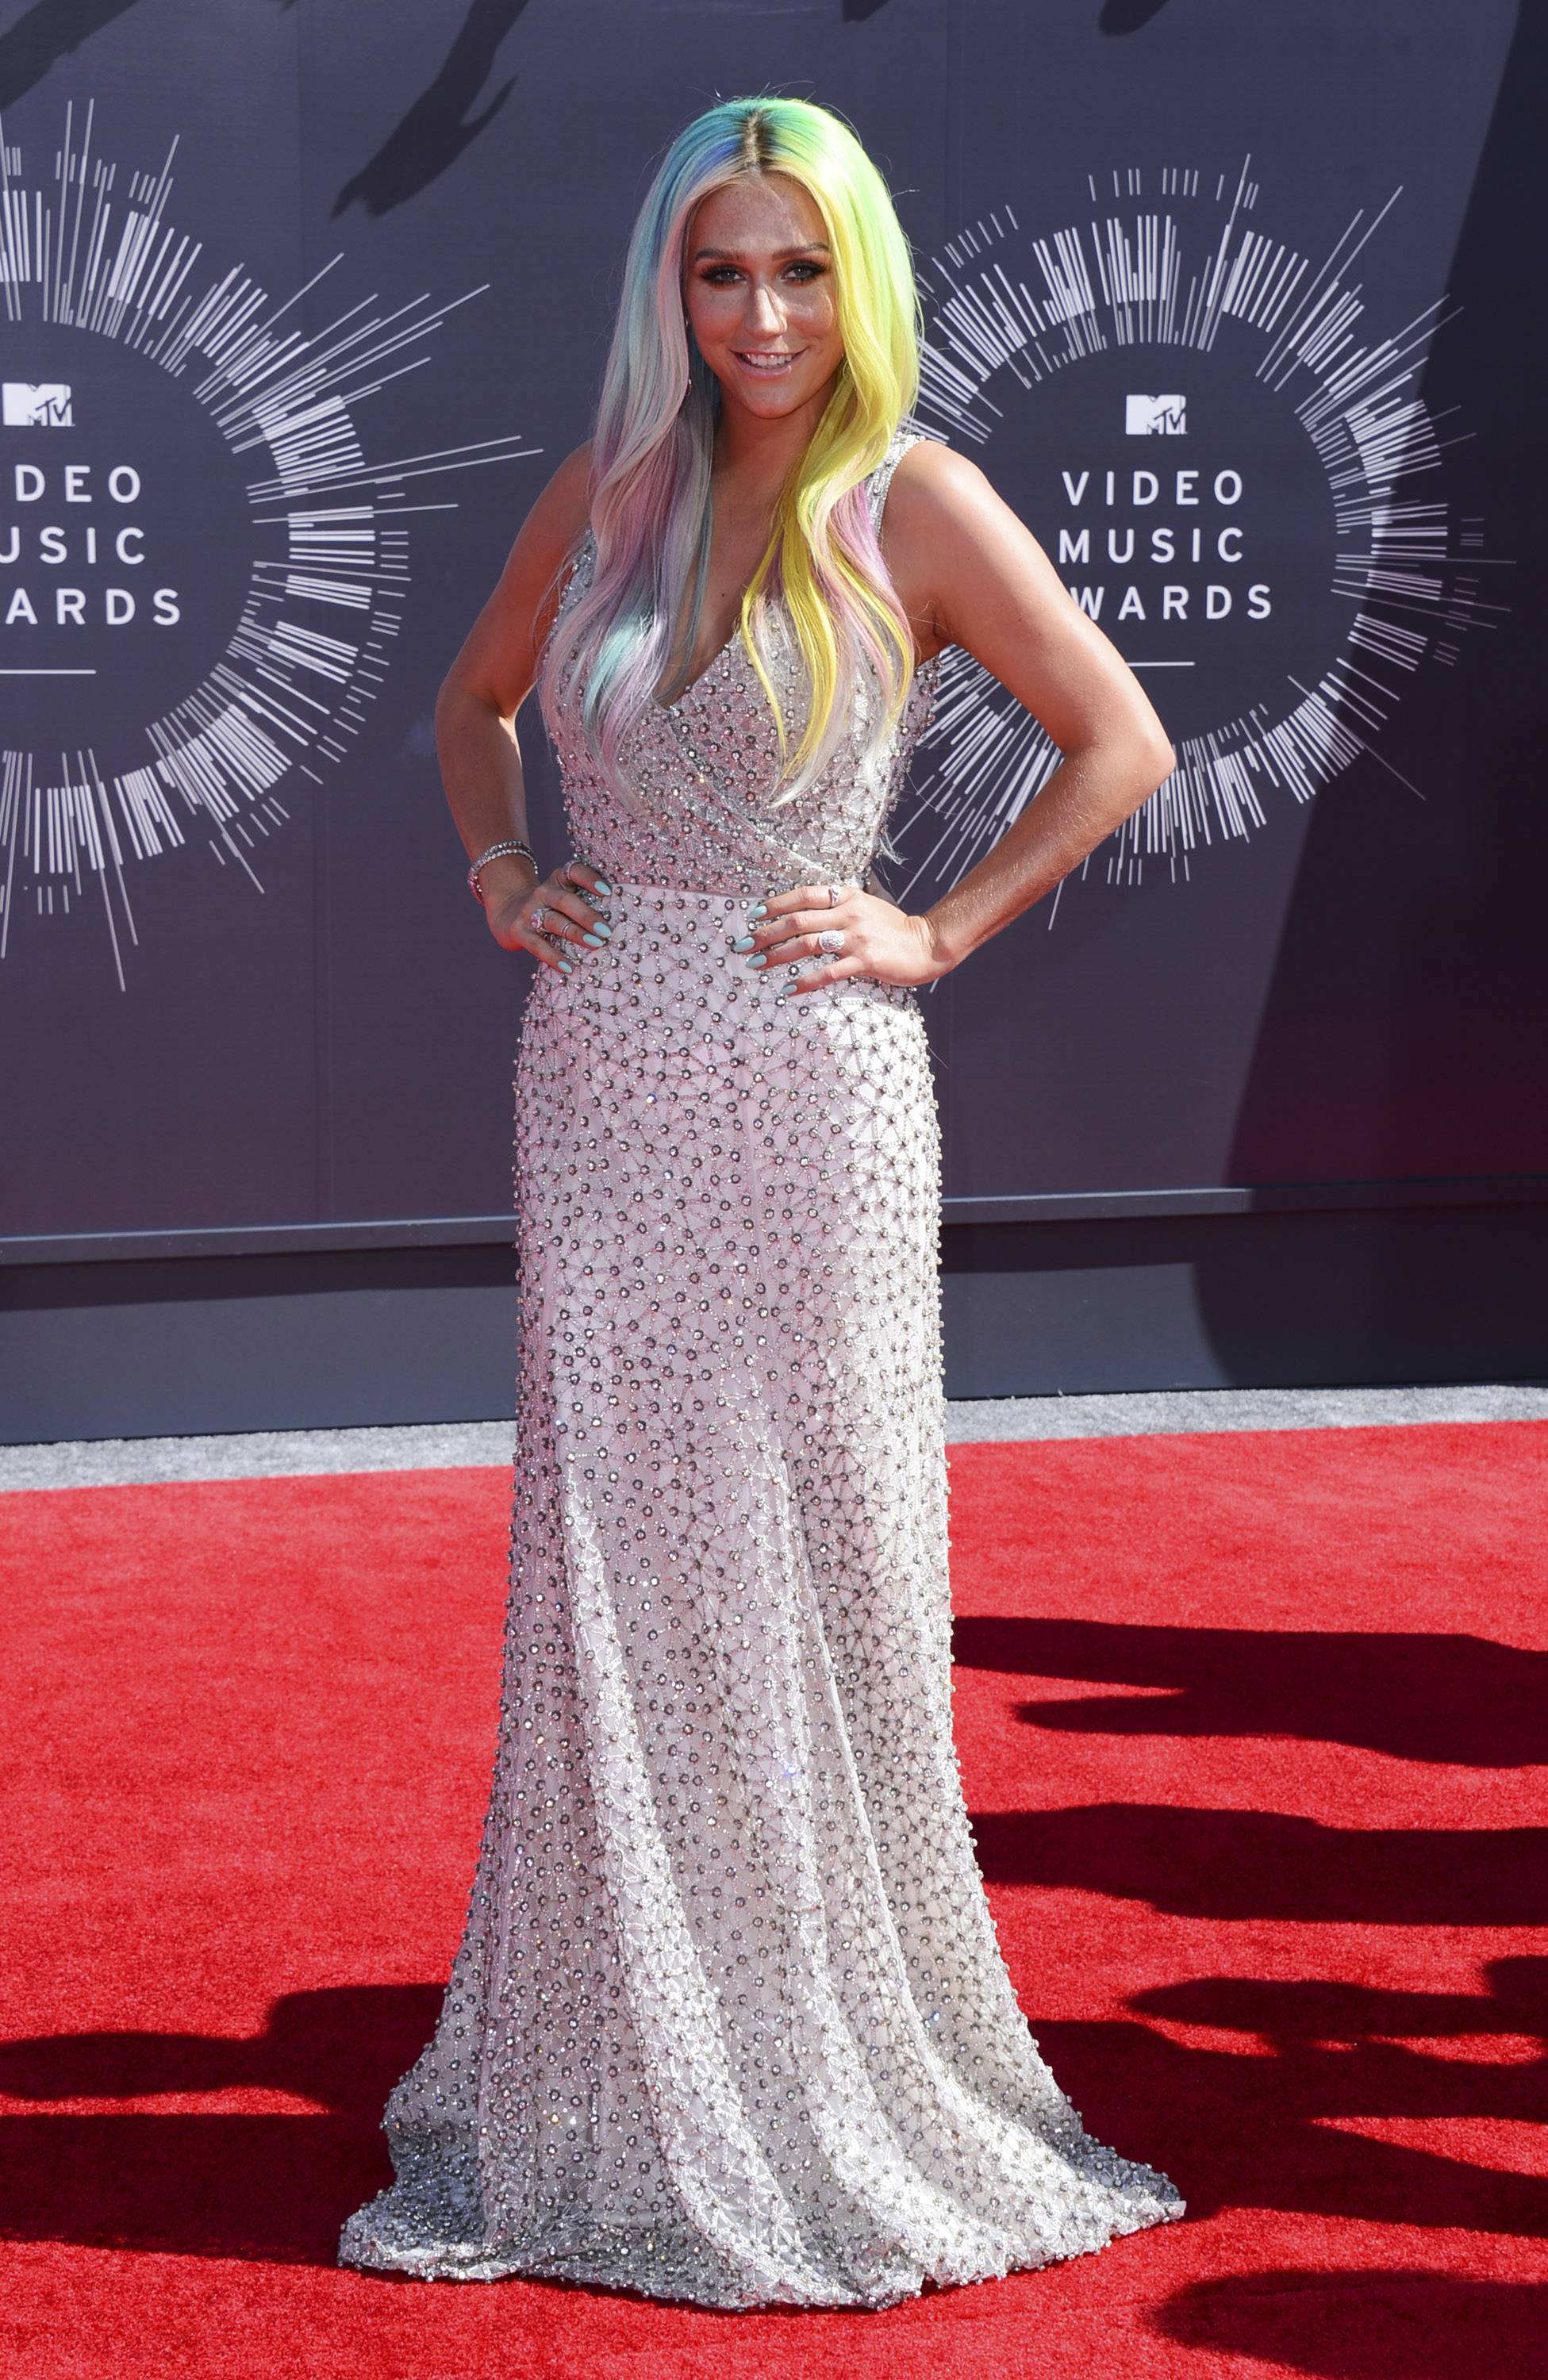 BEST: Ke$ha, who has seen her fair share of worst dressed list appearances, pulls off edgey glamour in this gown.